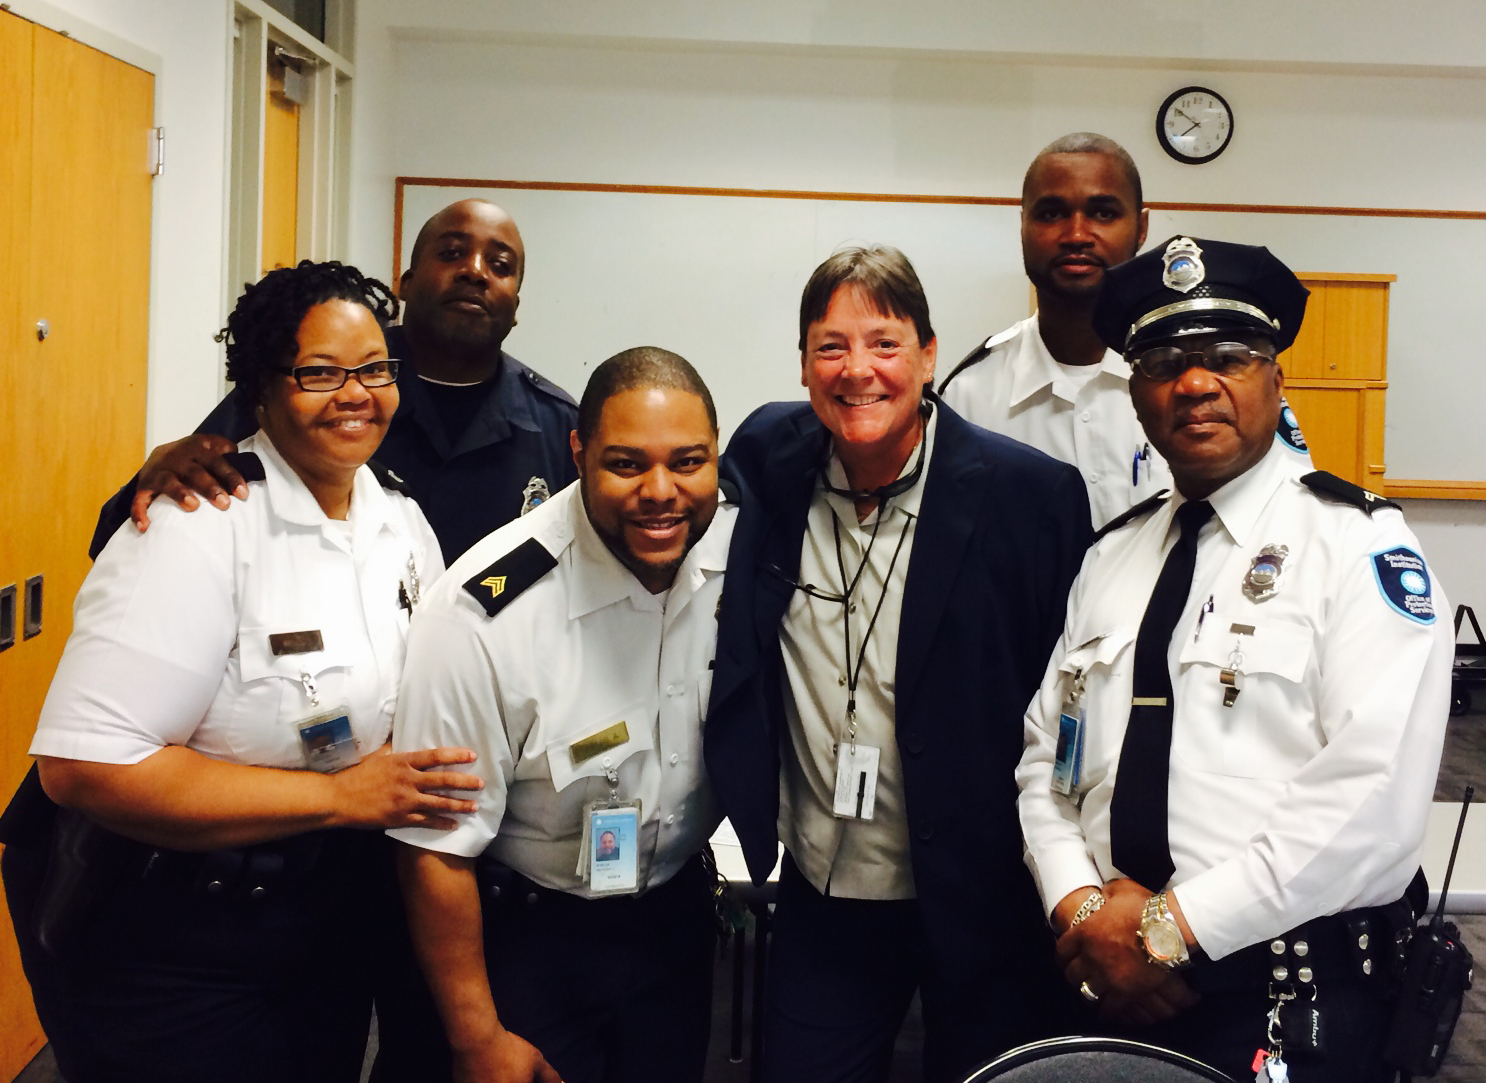 Dee Walker (fourth from left) with officers from the Office of Protective Services.